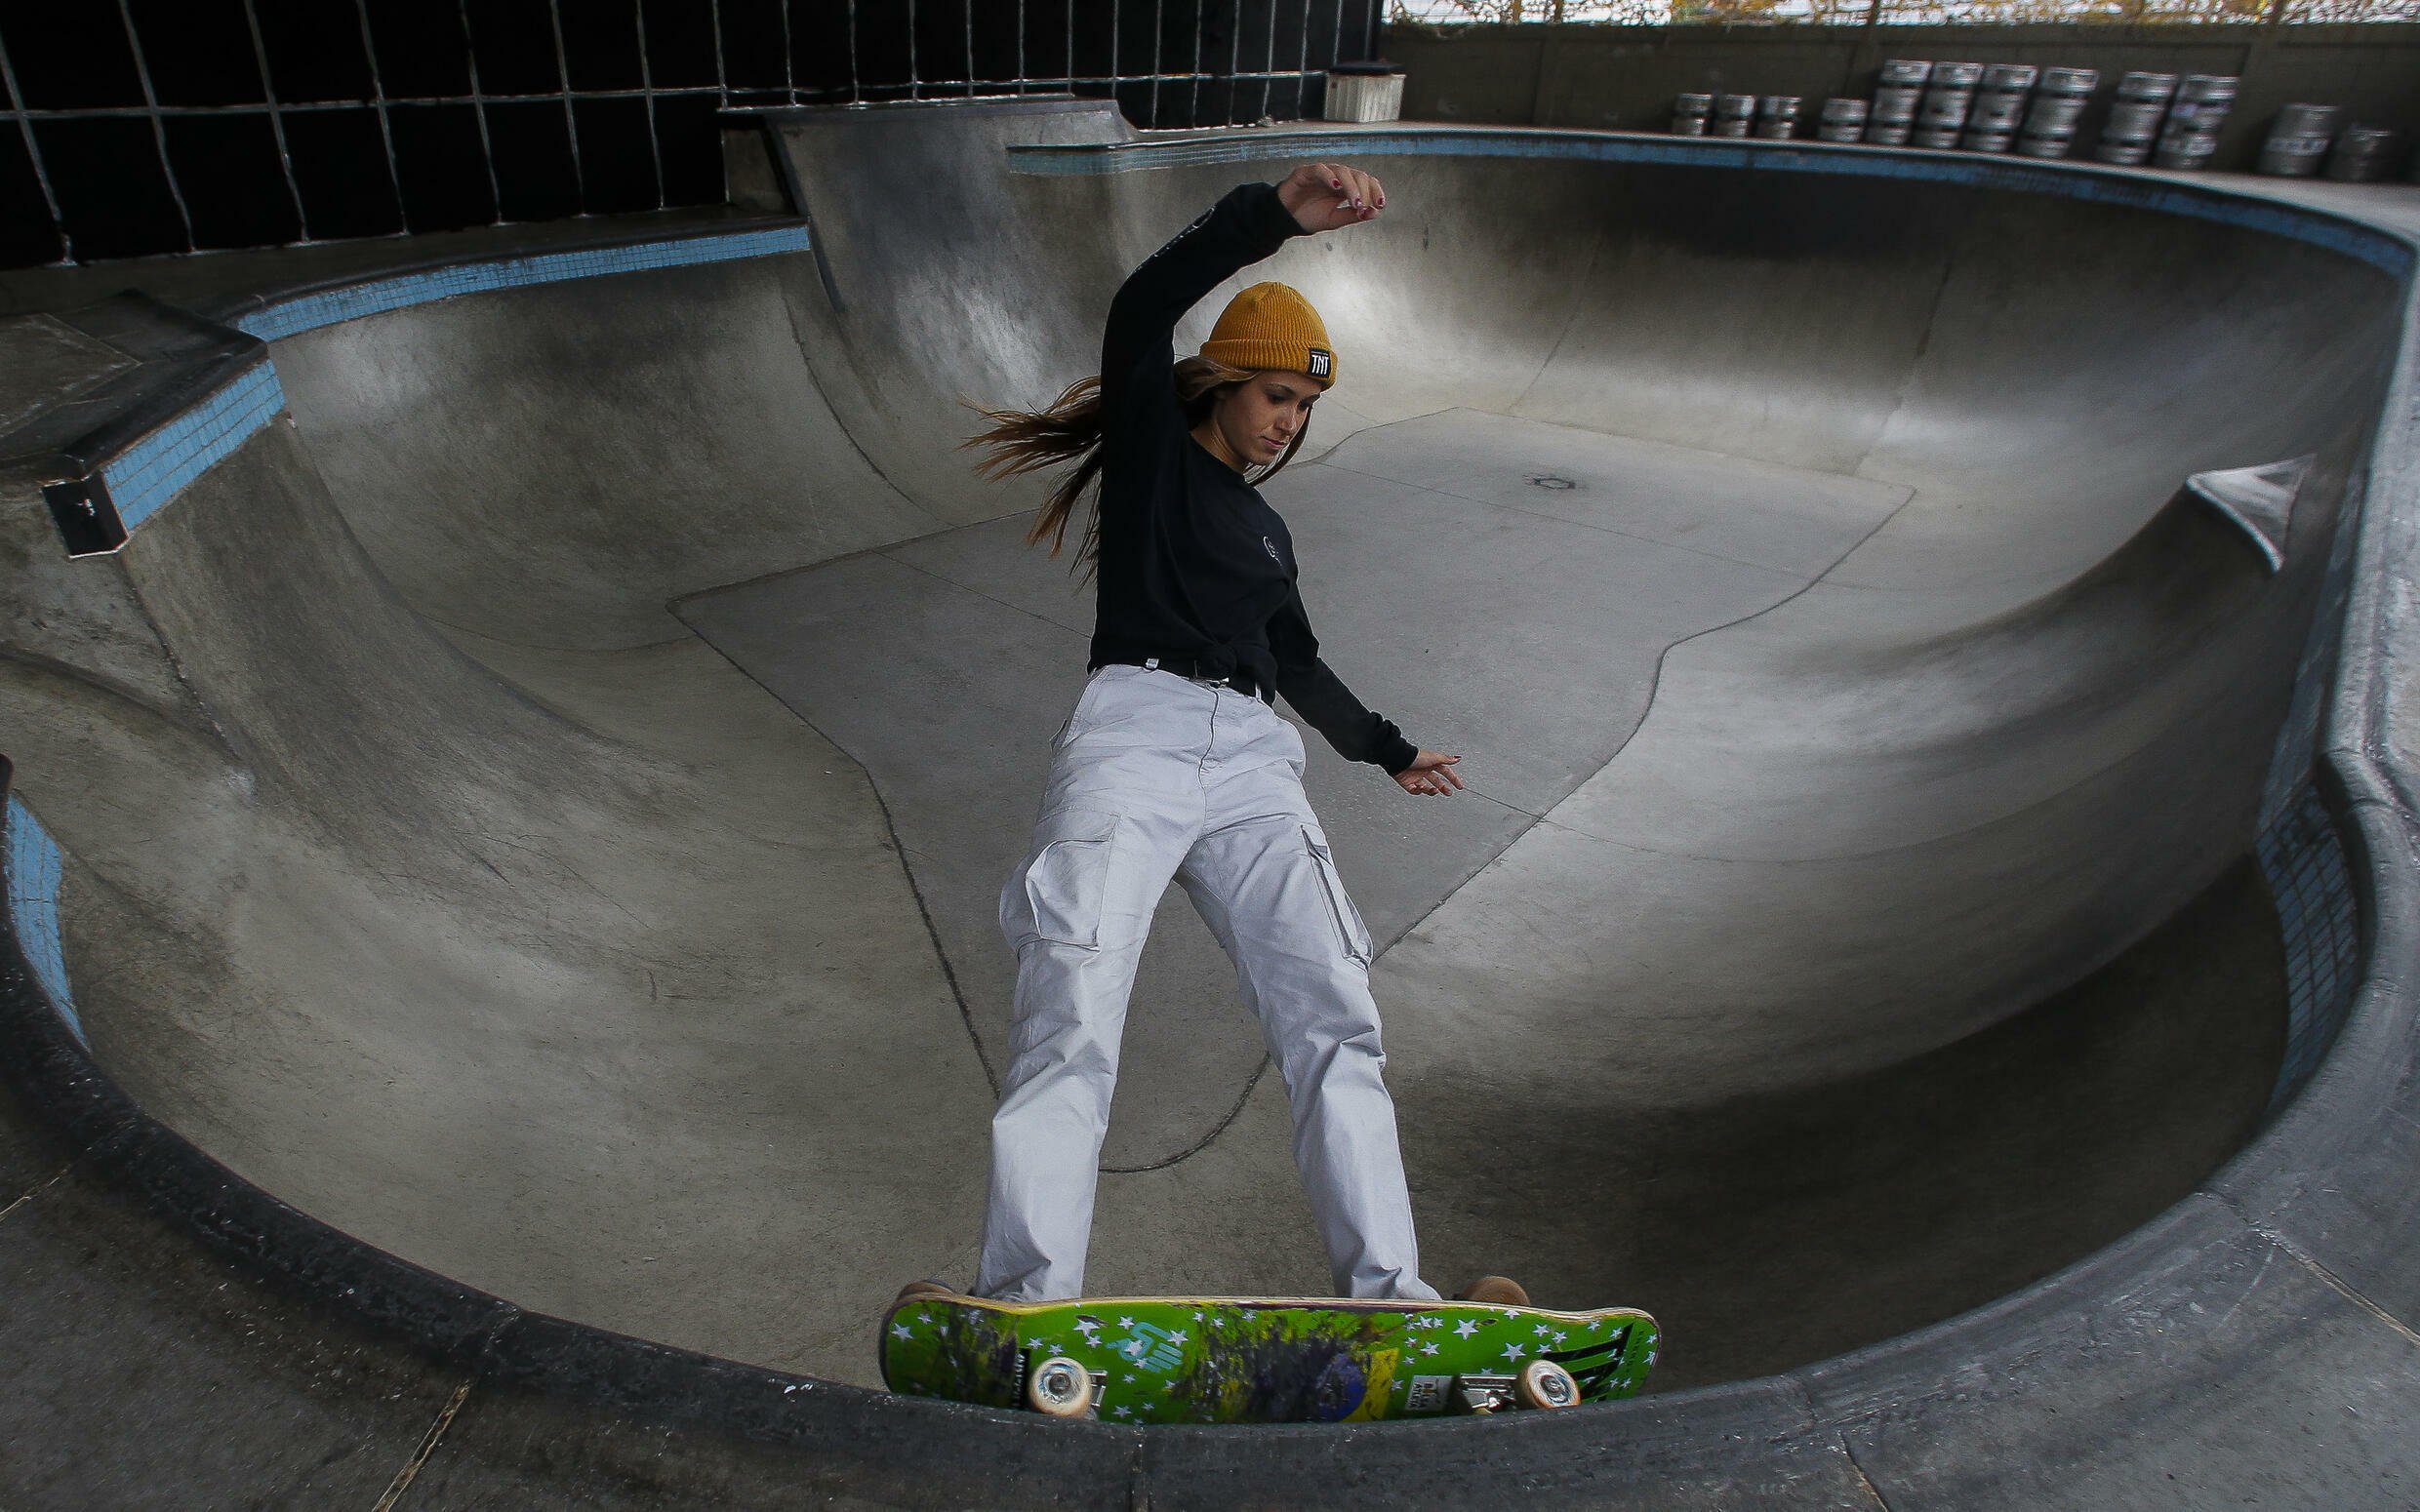 Brazilian skateboarder Dora Varella, who was on the Olympic team in Tokyo, says seeing all the young girls take up the sport is rewarding